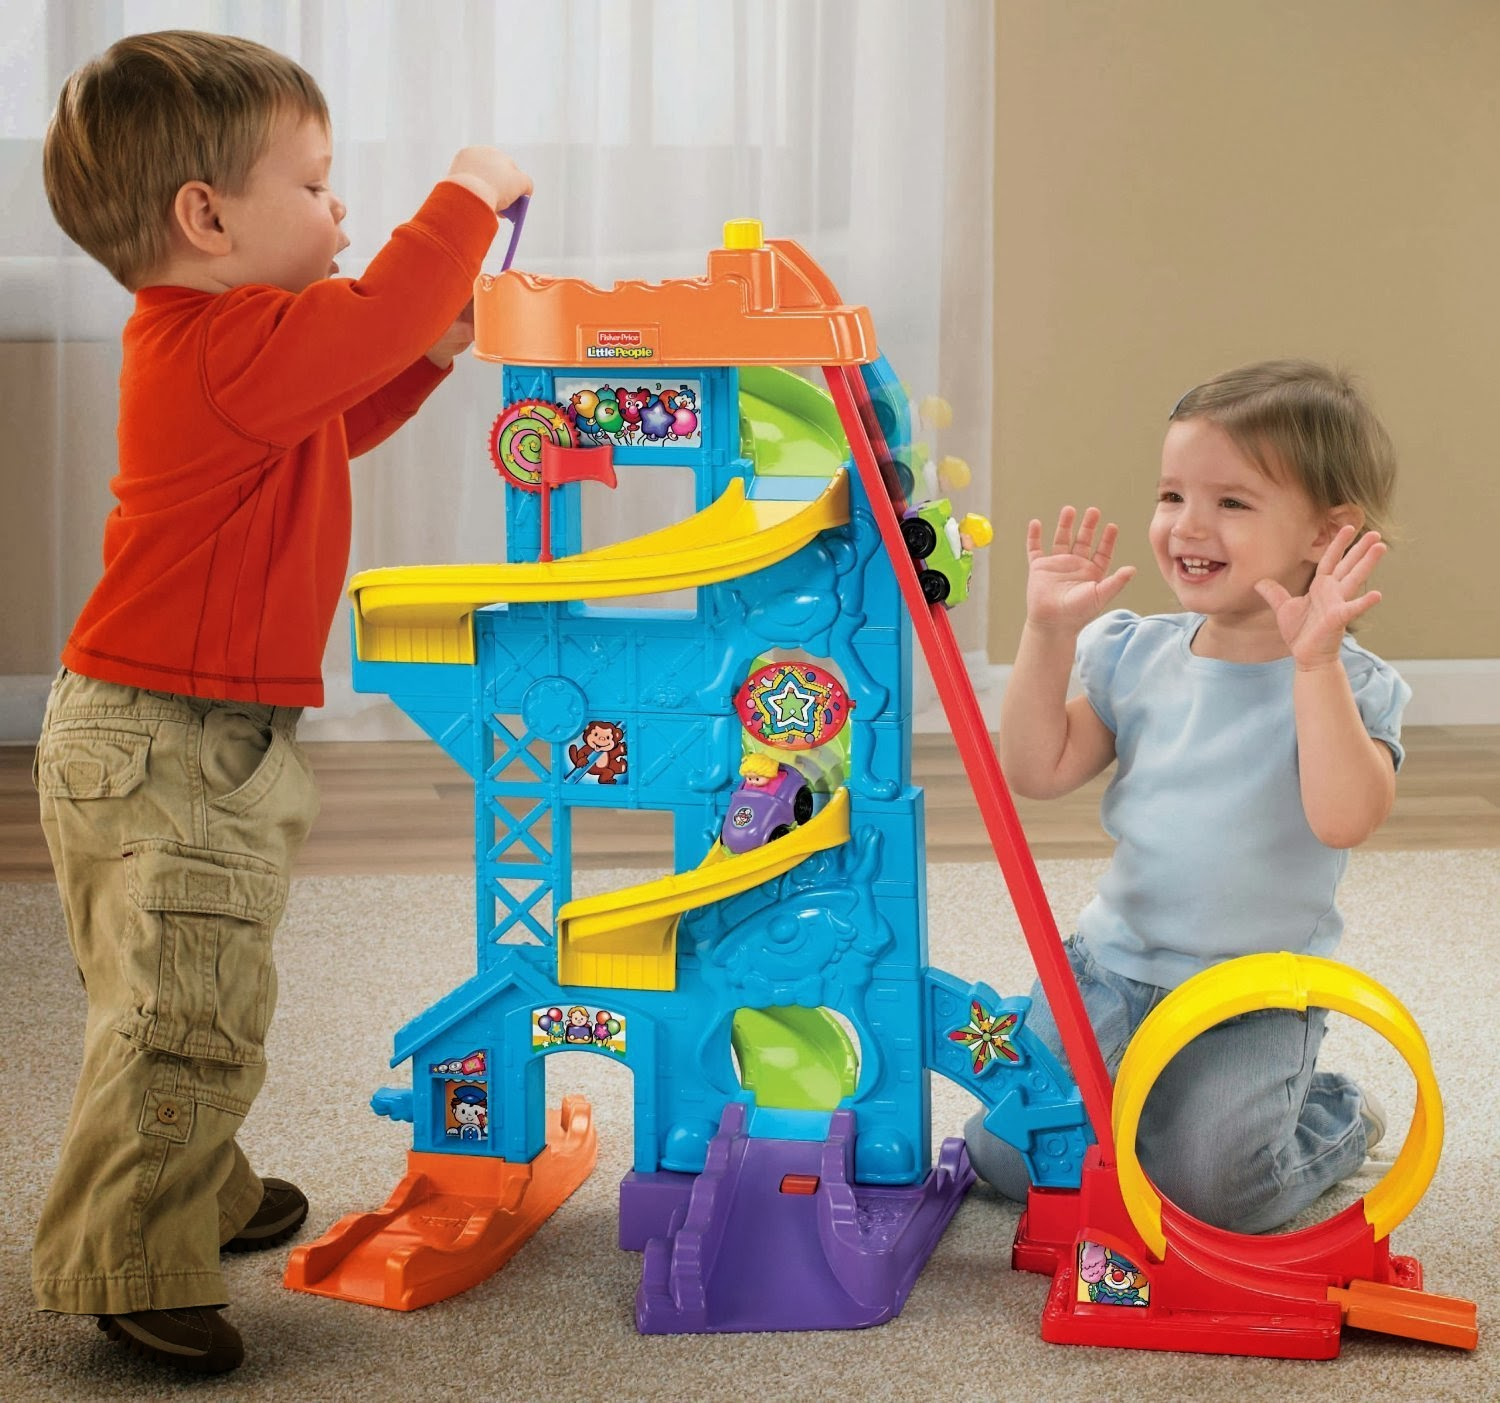 Toys For Toddlers One To Three Years : Fisher price wheelies loops n swoops amusement park